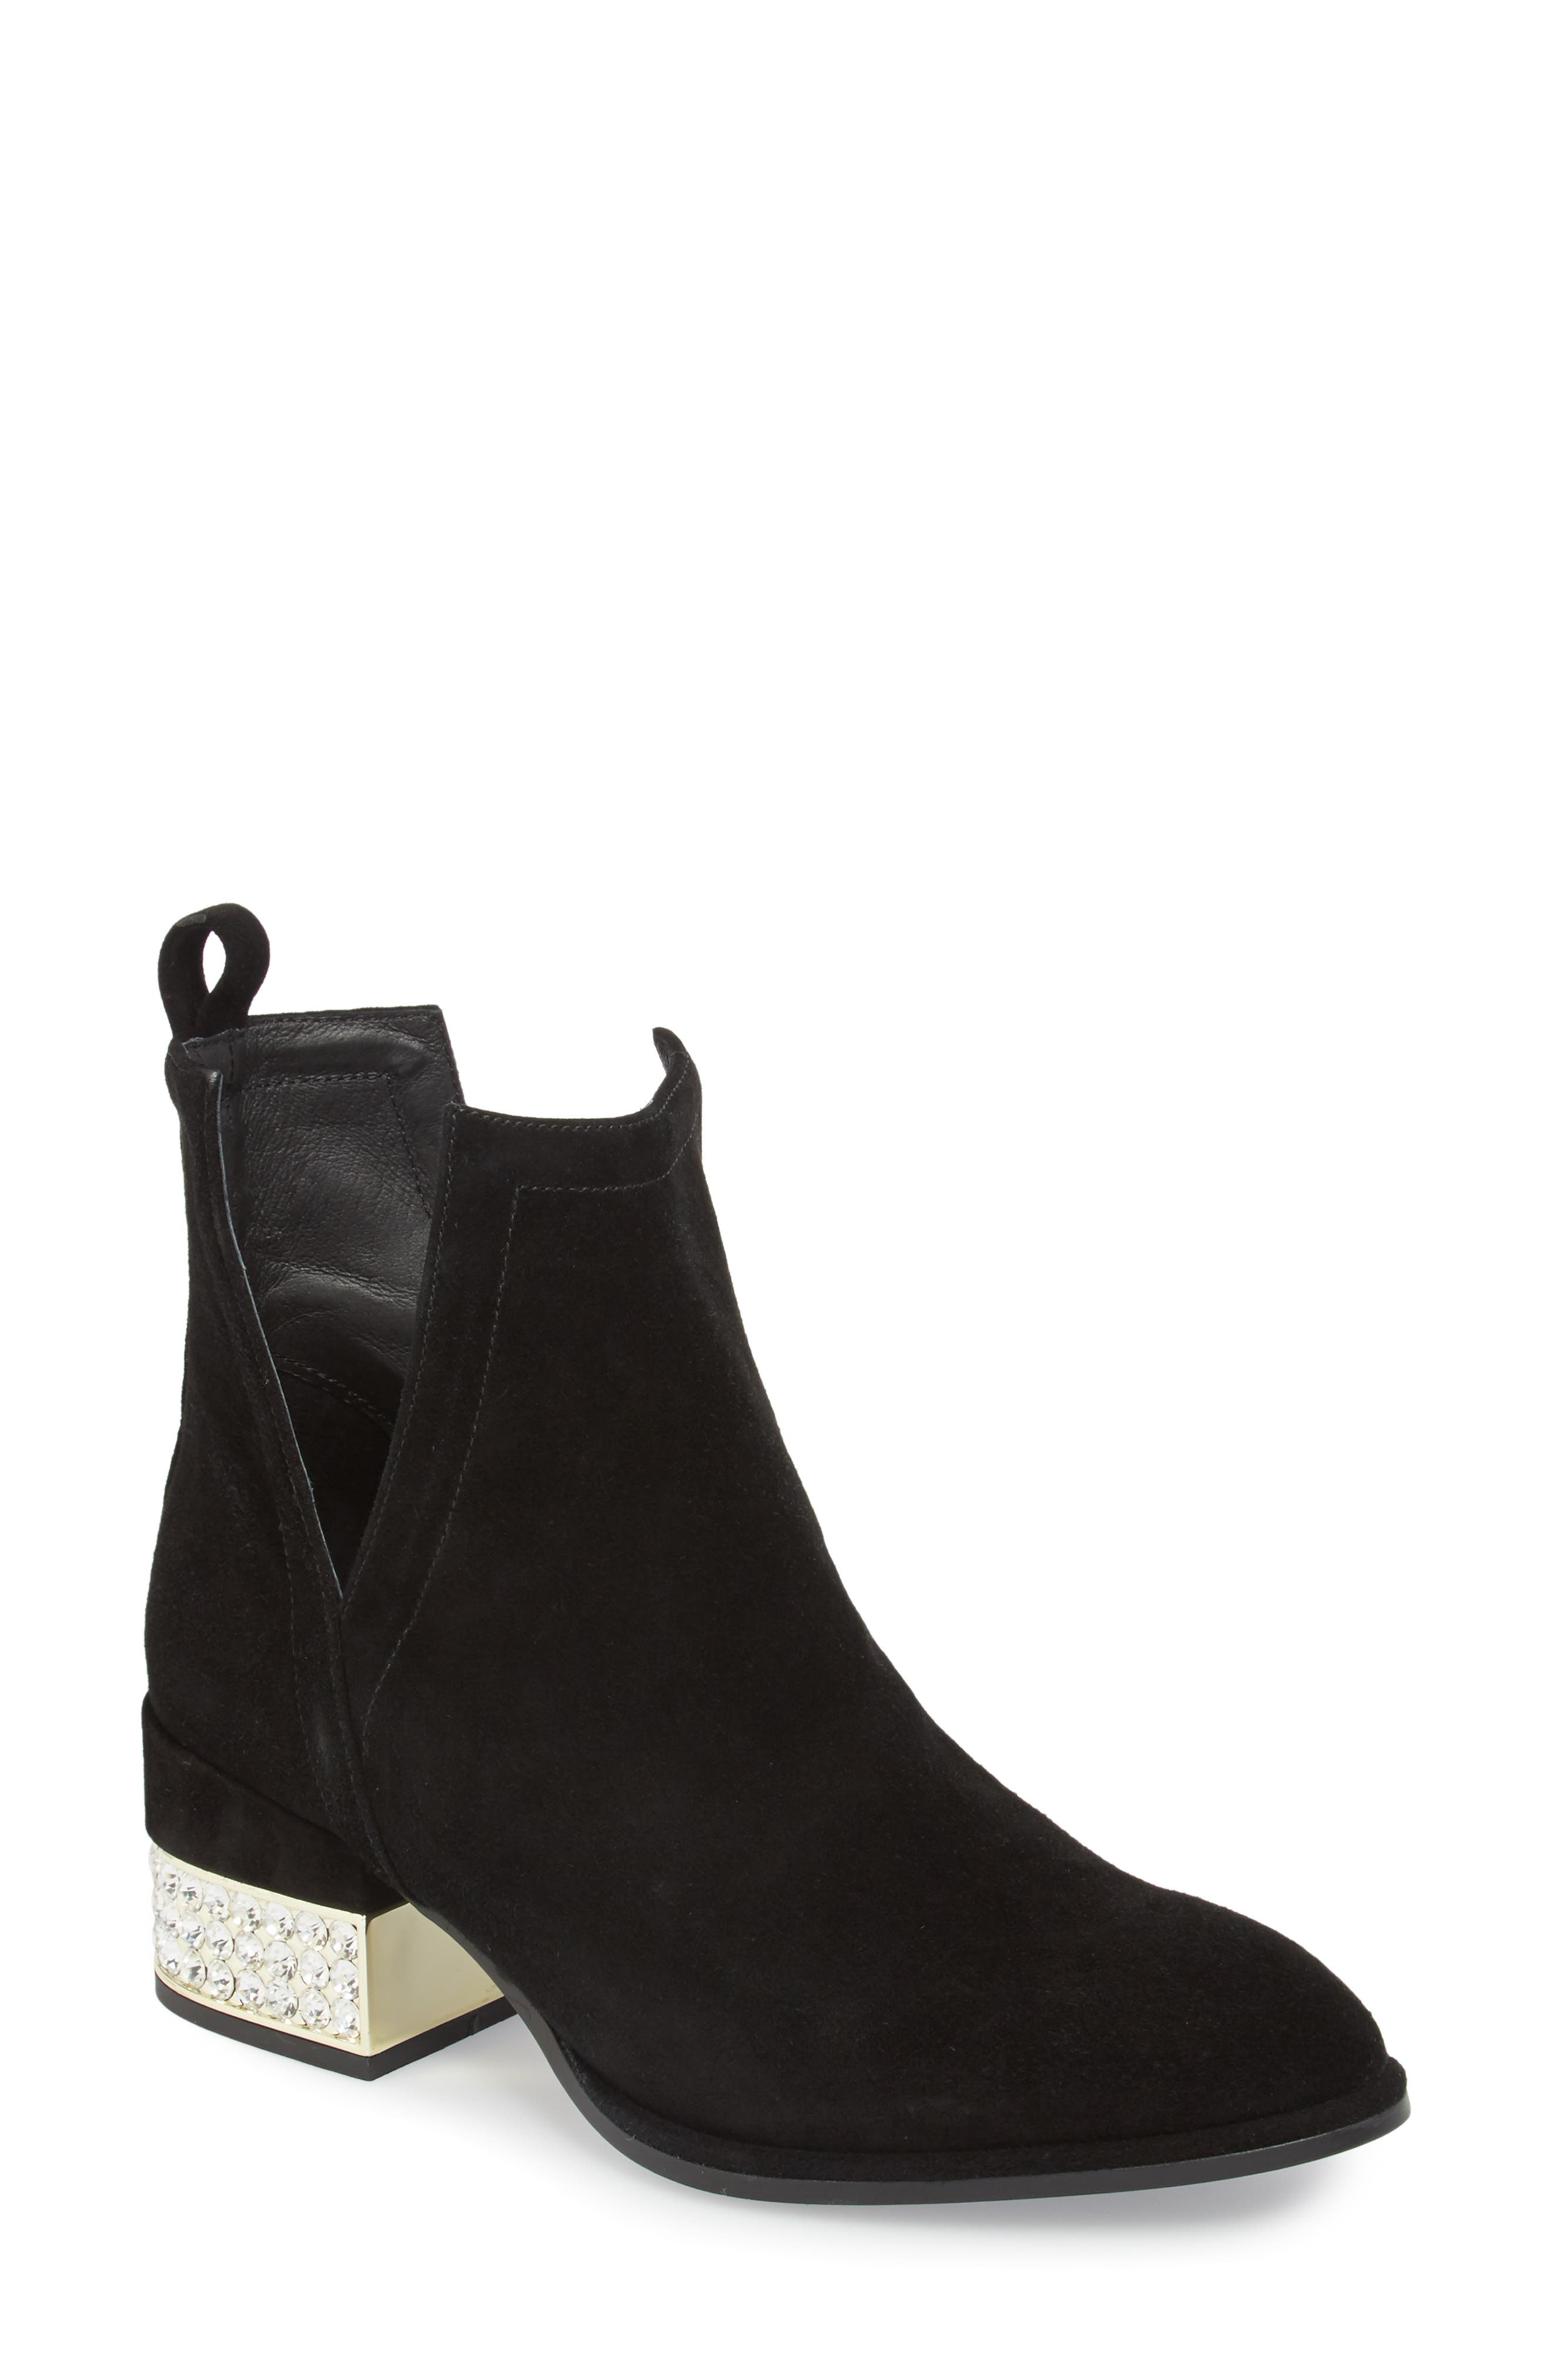 Crystal Embellished Musk Bootie,                             Main thumbnail 1, color,                             Black Suede Gold